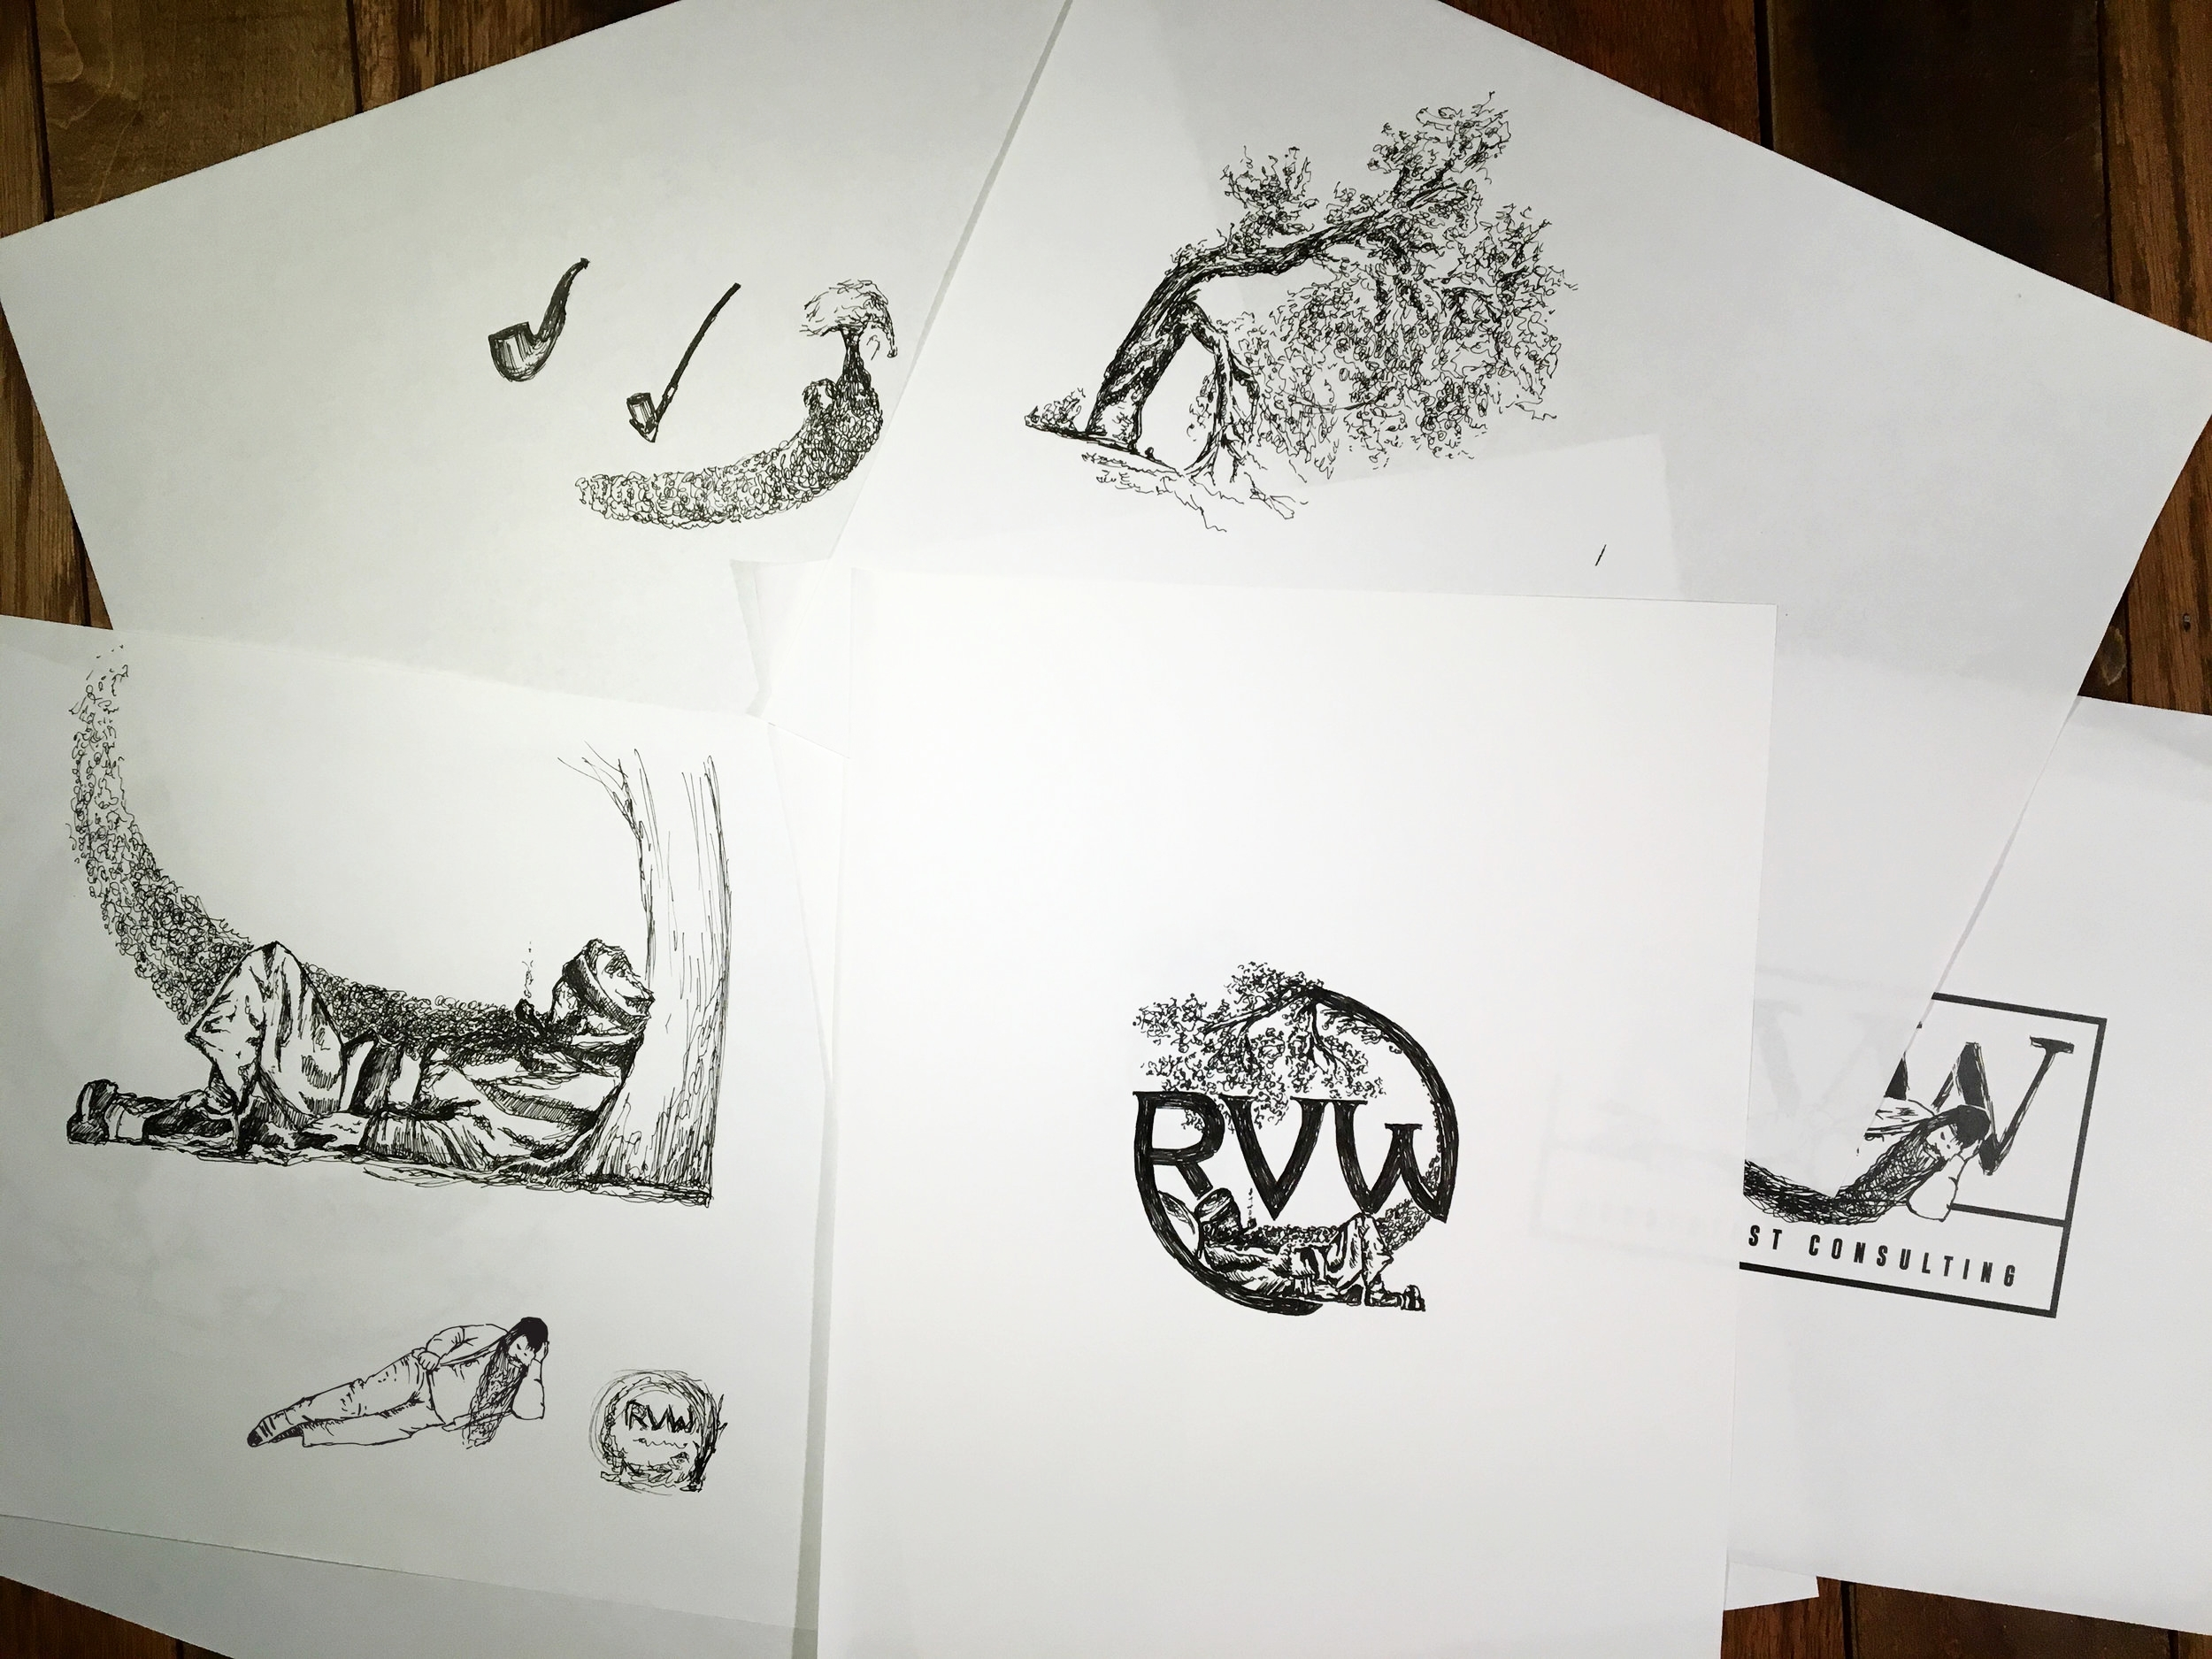 RVW illustrated logo design and identity by jordan fretz